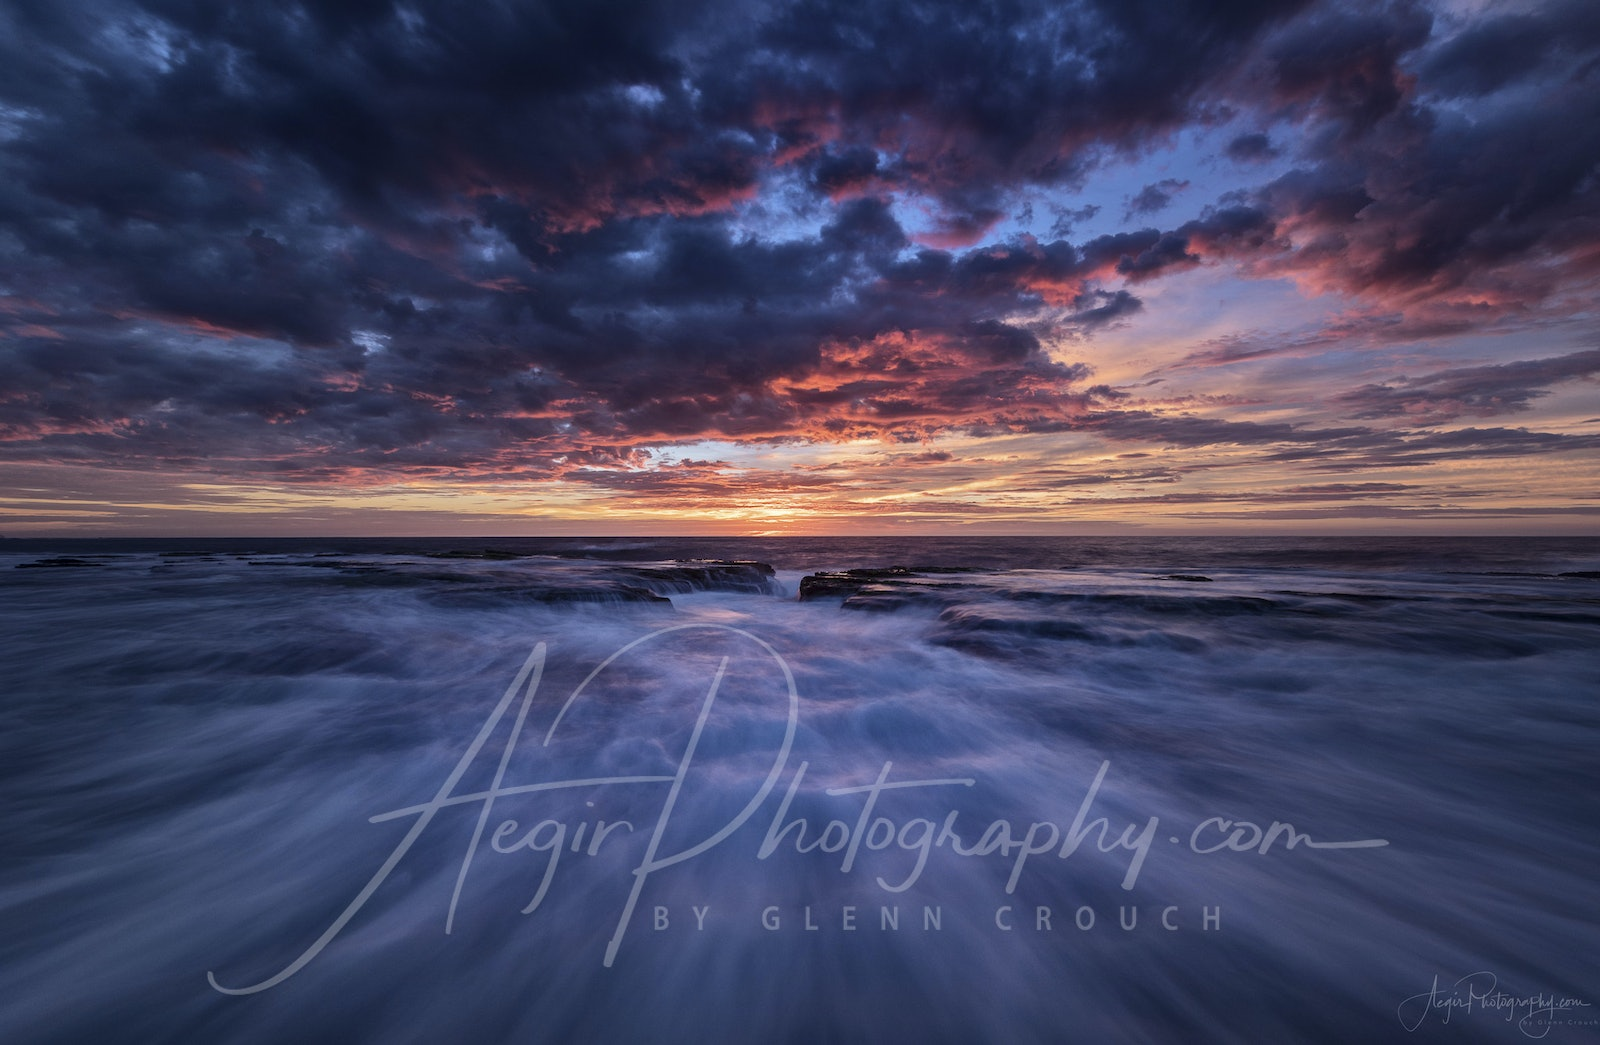 Rememberance - ANZAC Day 2017 sunrise over North Narrabeen pool, Sydney